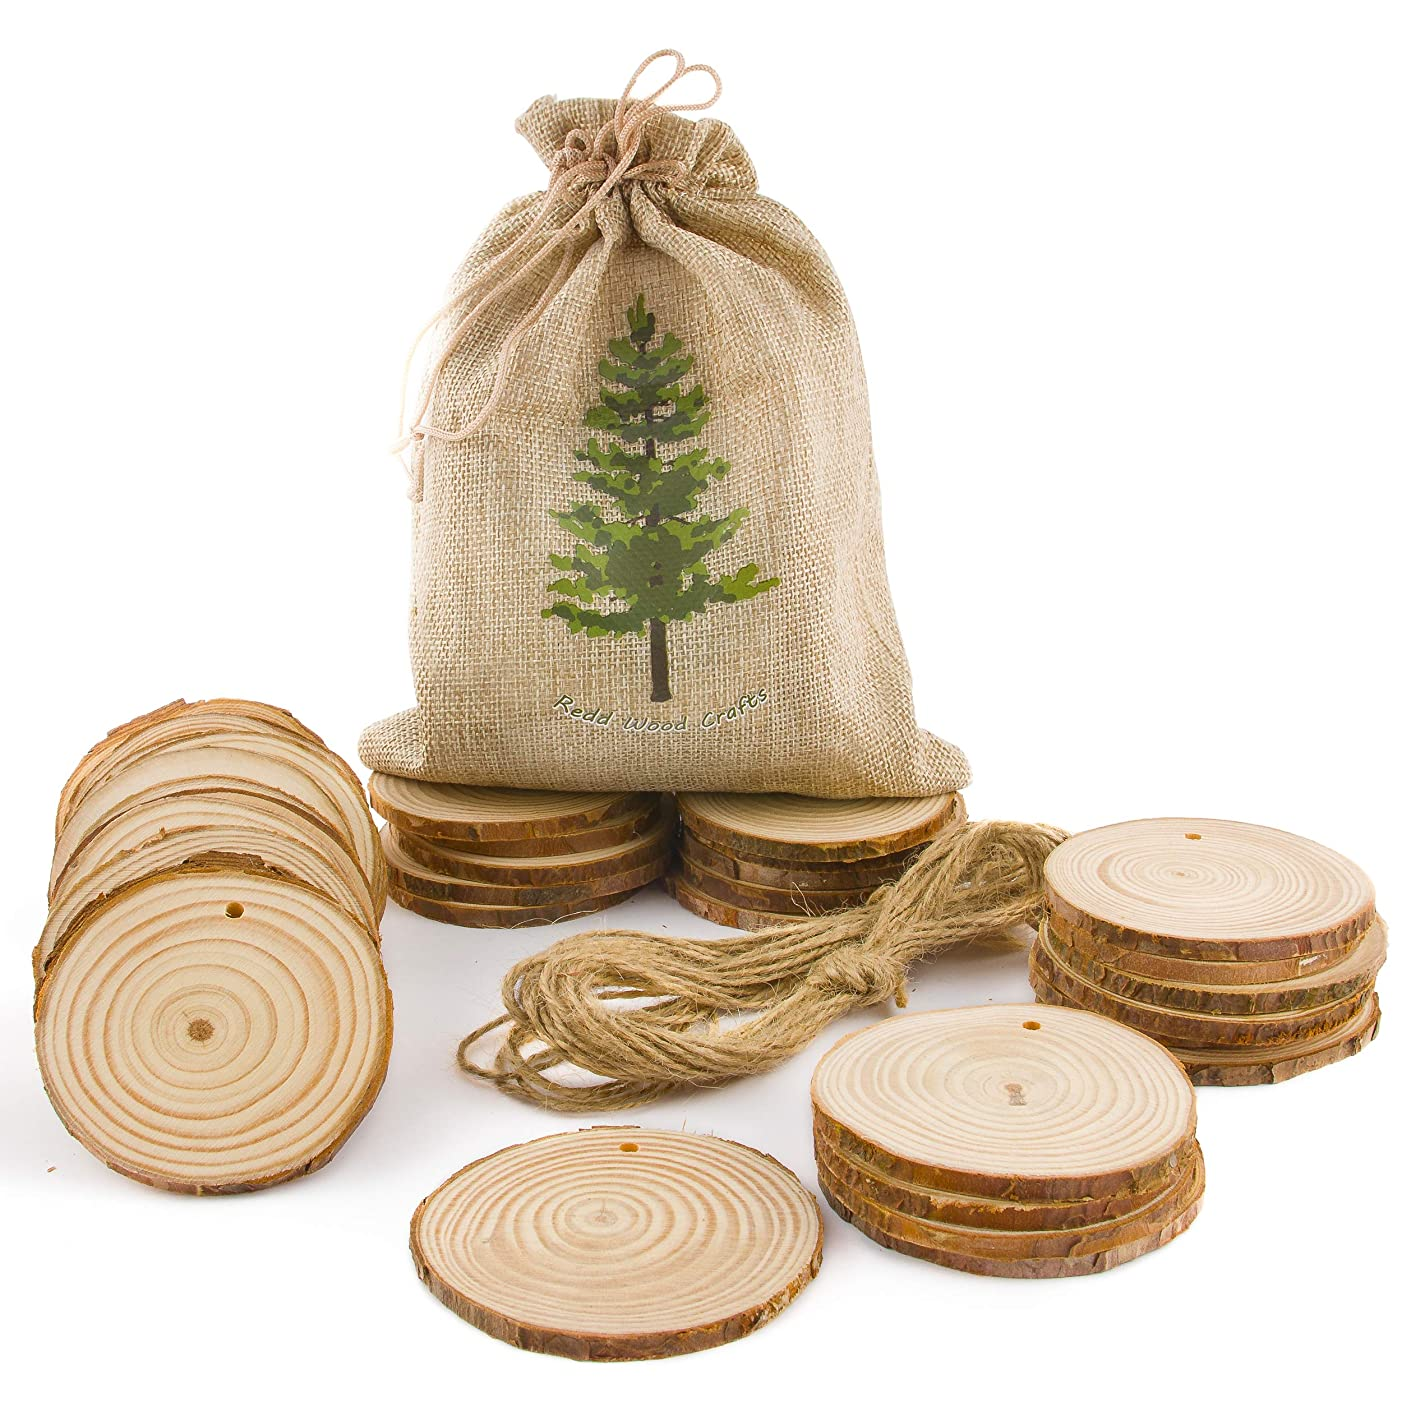 "Natural Wood Slices 33pcs. 3"" with 16ft of Twine; Pre-Drilled Holes; for DIY Crafts, Christmas Ornaments, Seasonal and Holiday Decorations, Rustic Wedding Décor; Unfinished Wooden Circles with Bark"